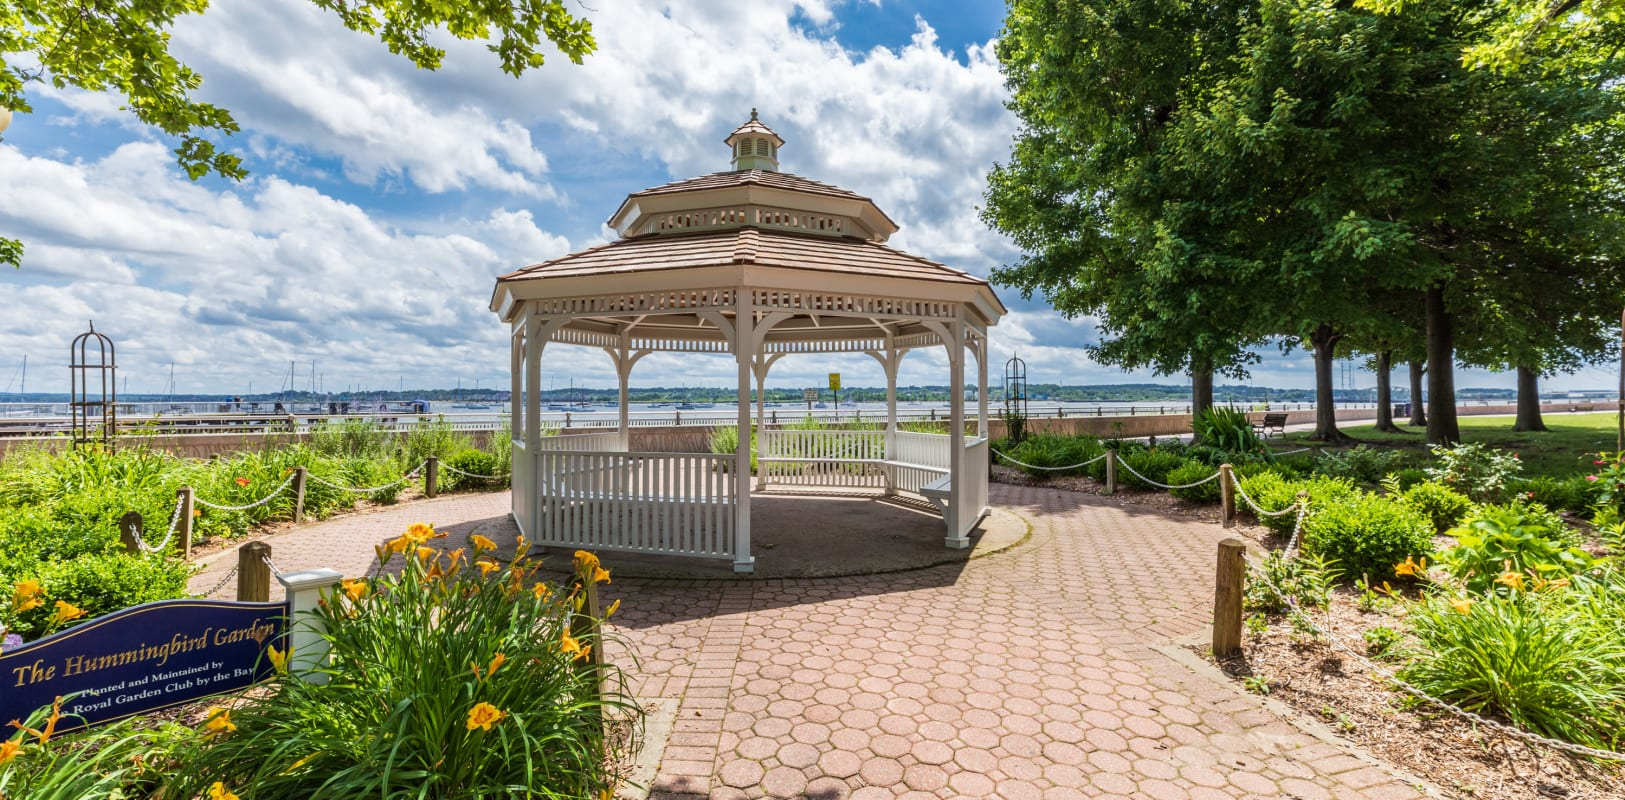 Gazebo in nice park near the water with lots of seats to relax at in Perth Amboy, New Jersey near Marineview Apartments